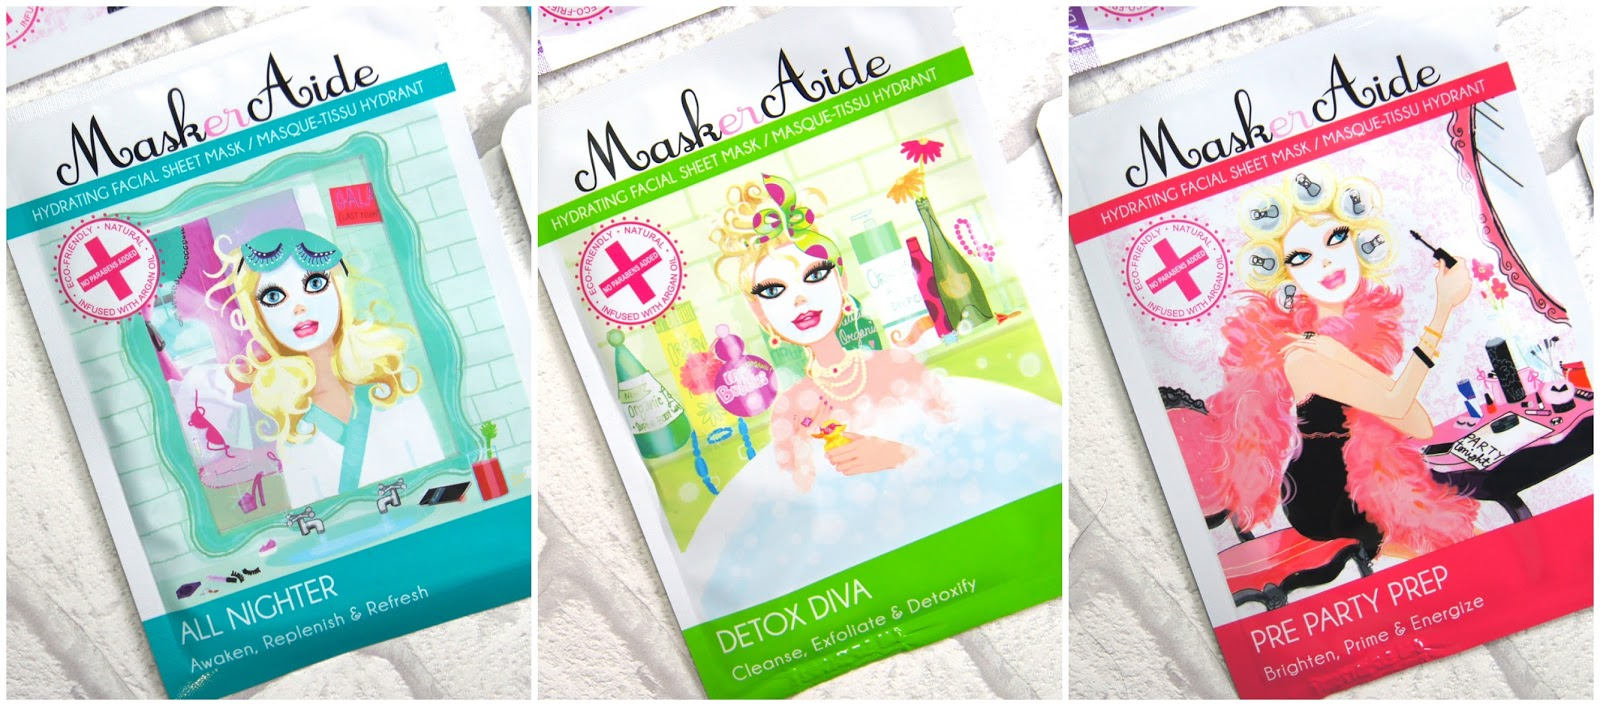 maskeraide sheet masks review all nighter detox diva pre party prep